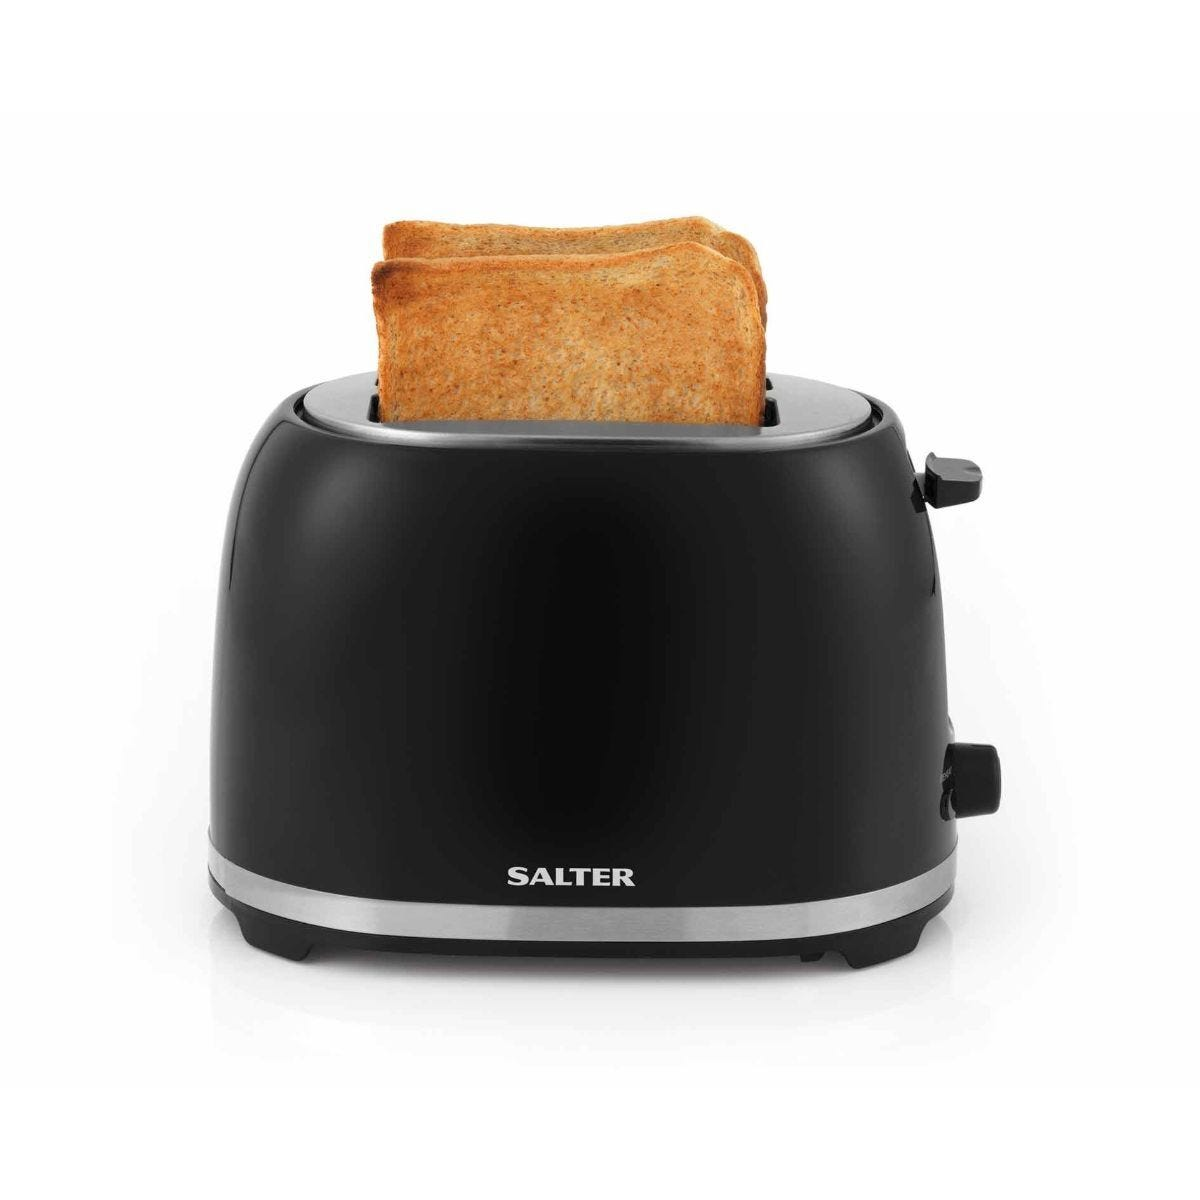 Salter Deco 2 Slice Toaster Black with Stainless Steel